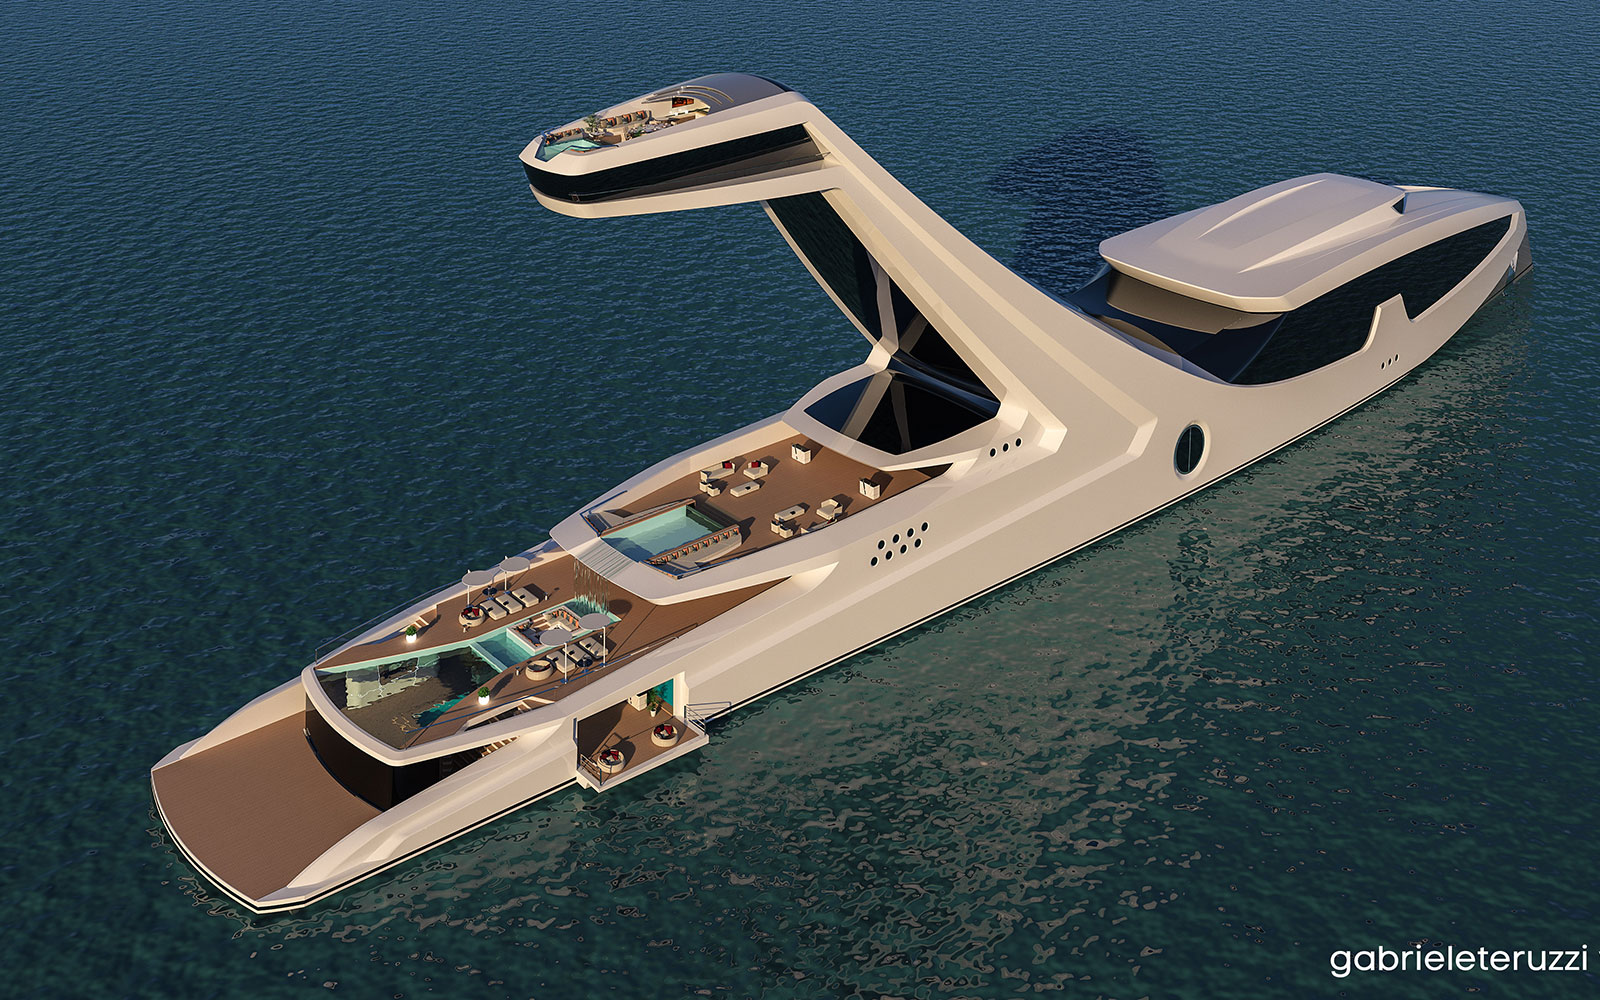 Take a Peek at the Outlandish Plans for the World's Tallest Yacht